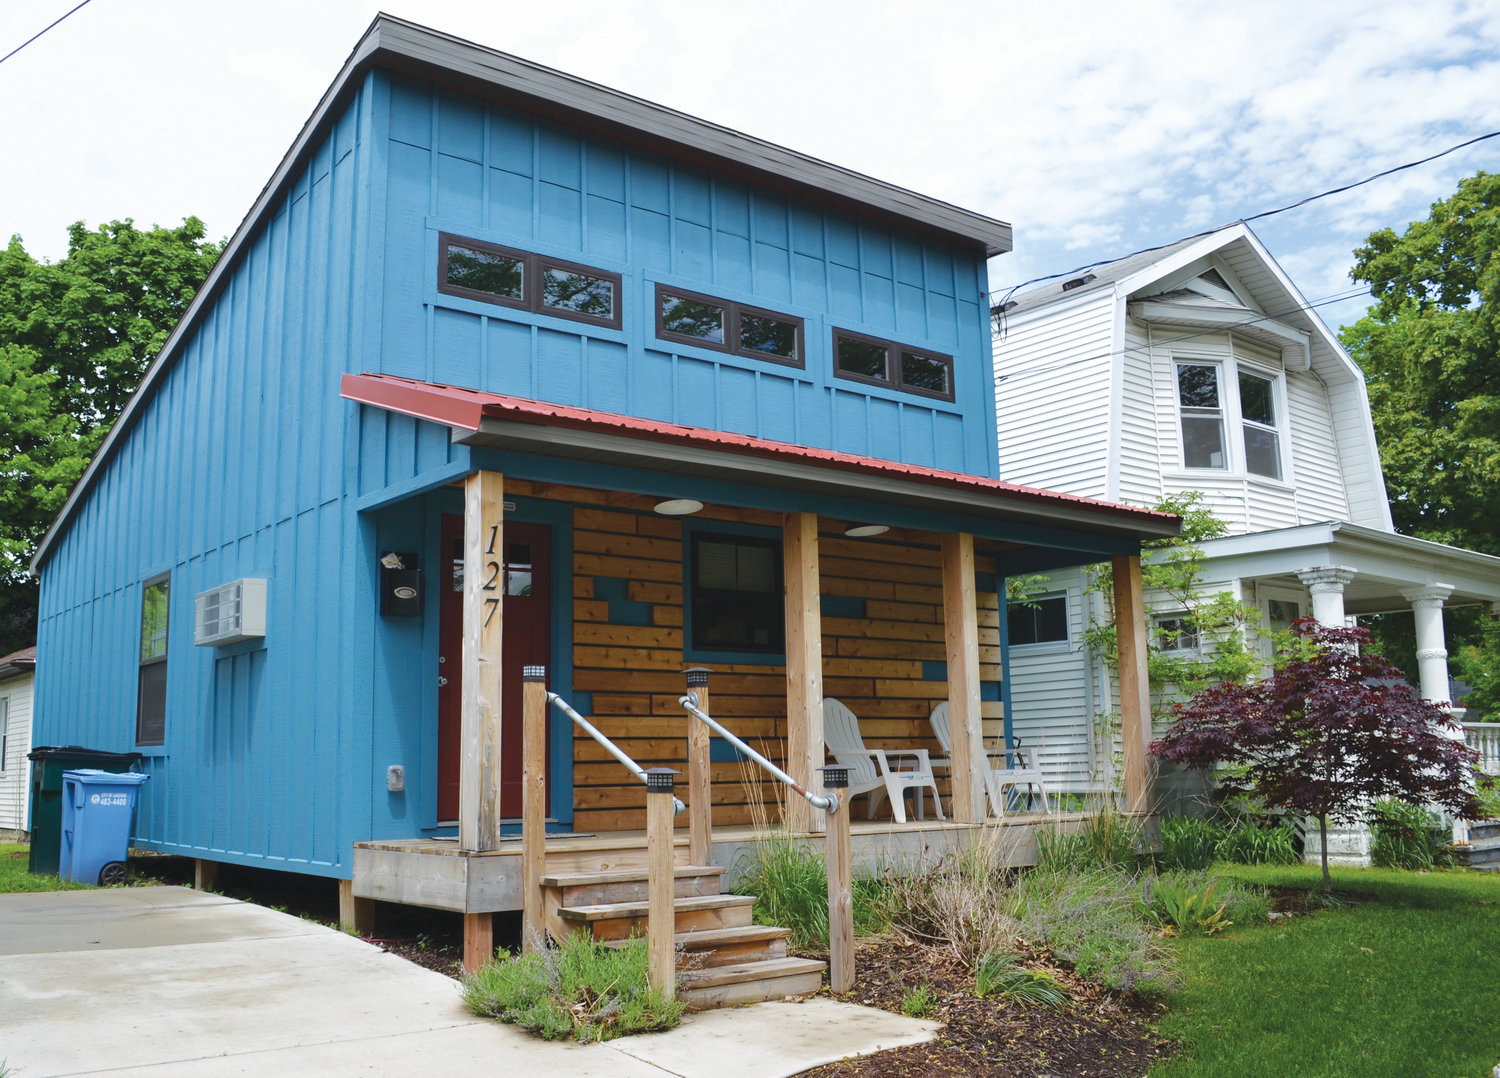 Developer Brent Forsberg is eager to tap further into the smaller-home market in Lansing after the successful construction of this 600-square-foot, one-bedroom home on Elm Street in REO Town.